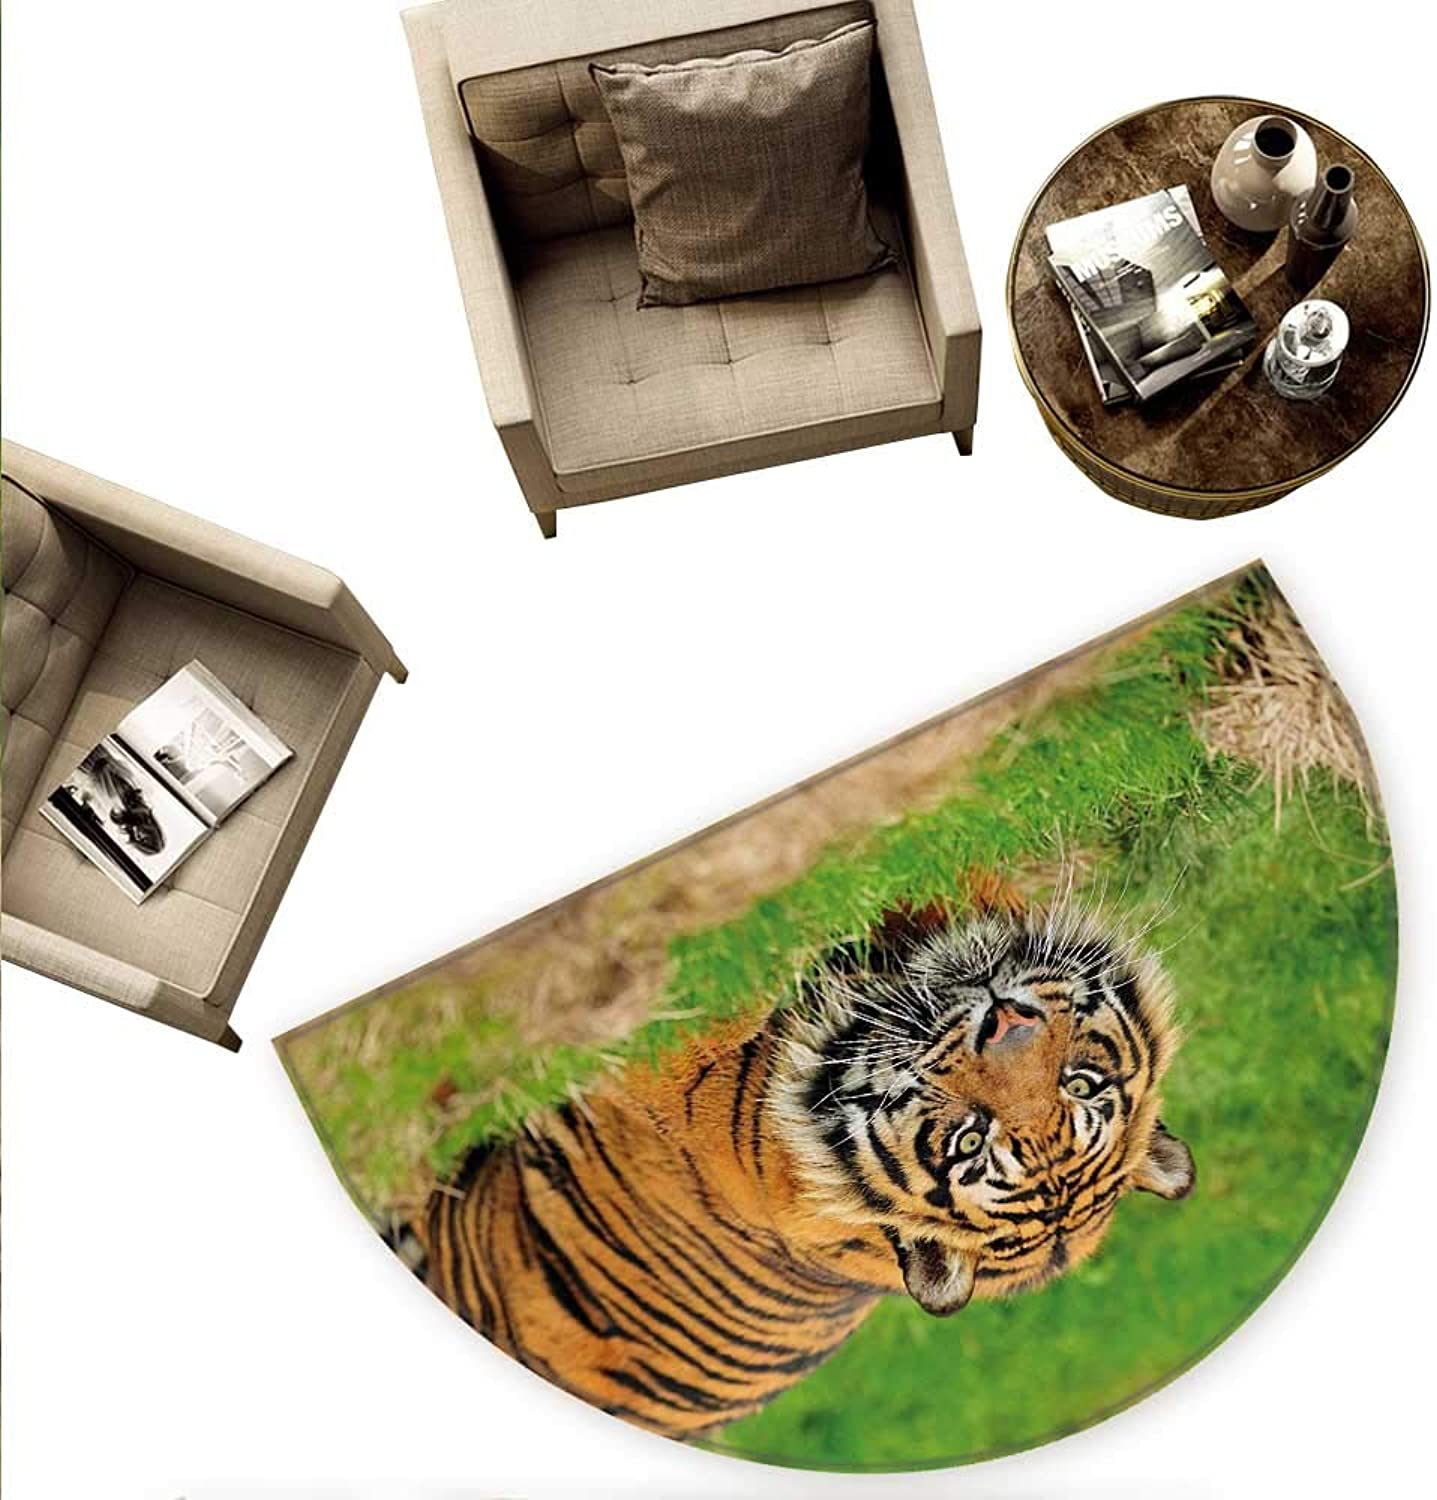 Tiger Semicircular Cushion Sumatran Feline Hiding in Ambush While Stalking Its Prey Moments Before Attack Entry Door Mat H 63  xD 94.5  Green orange